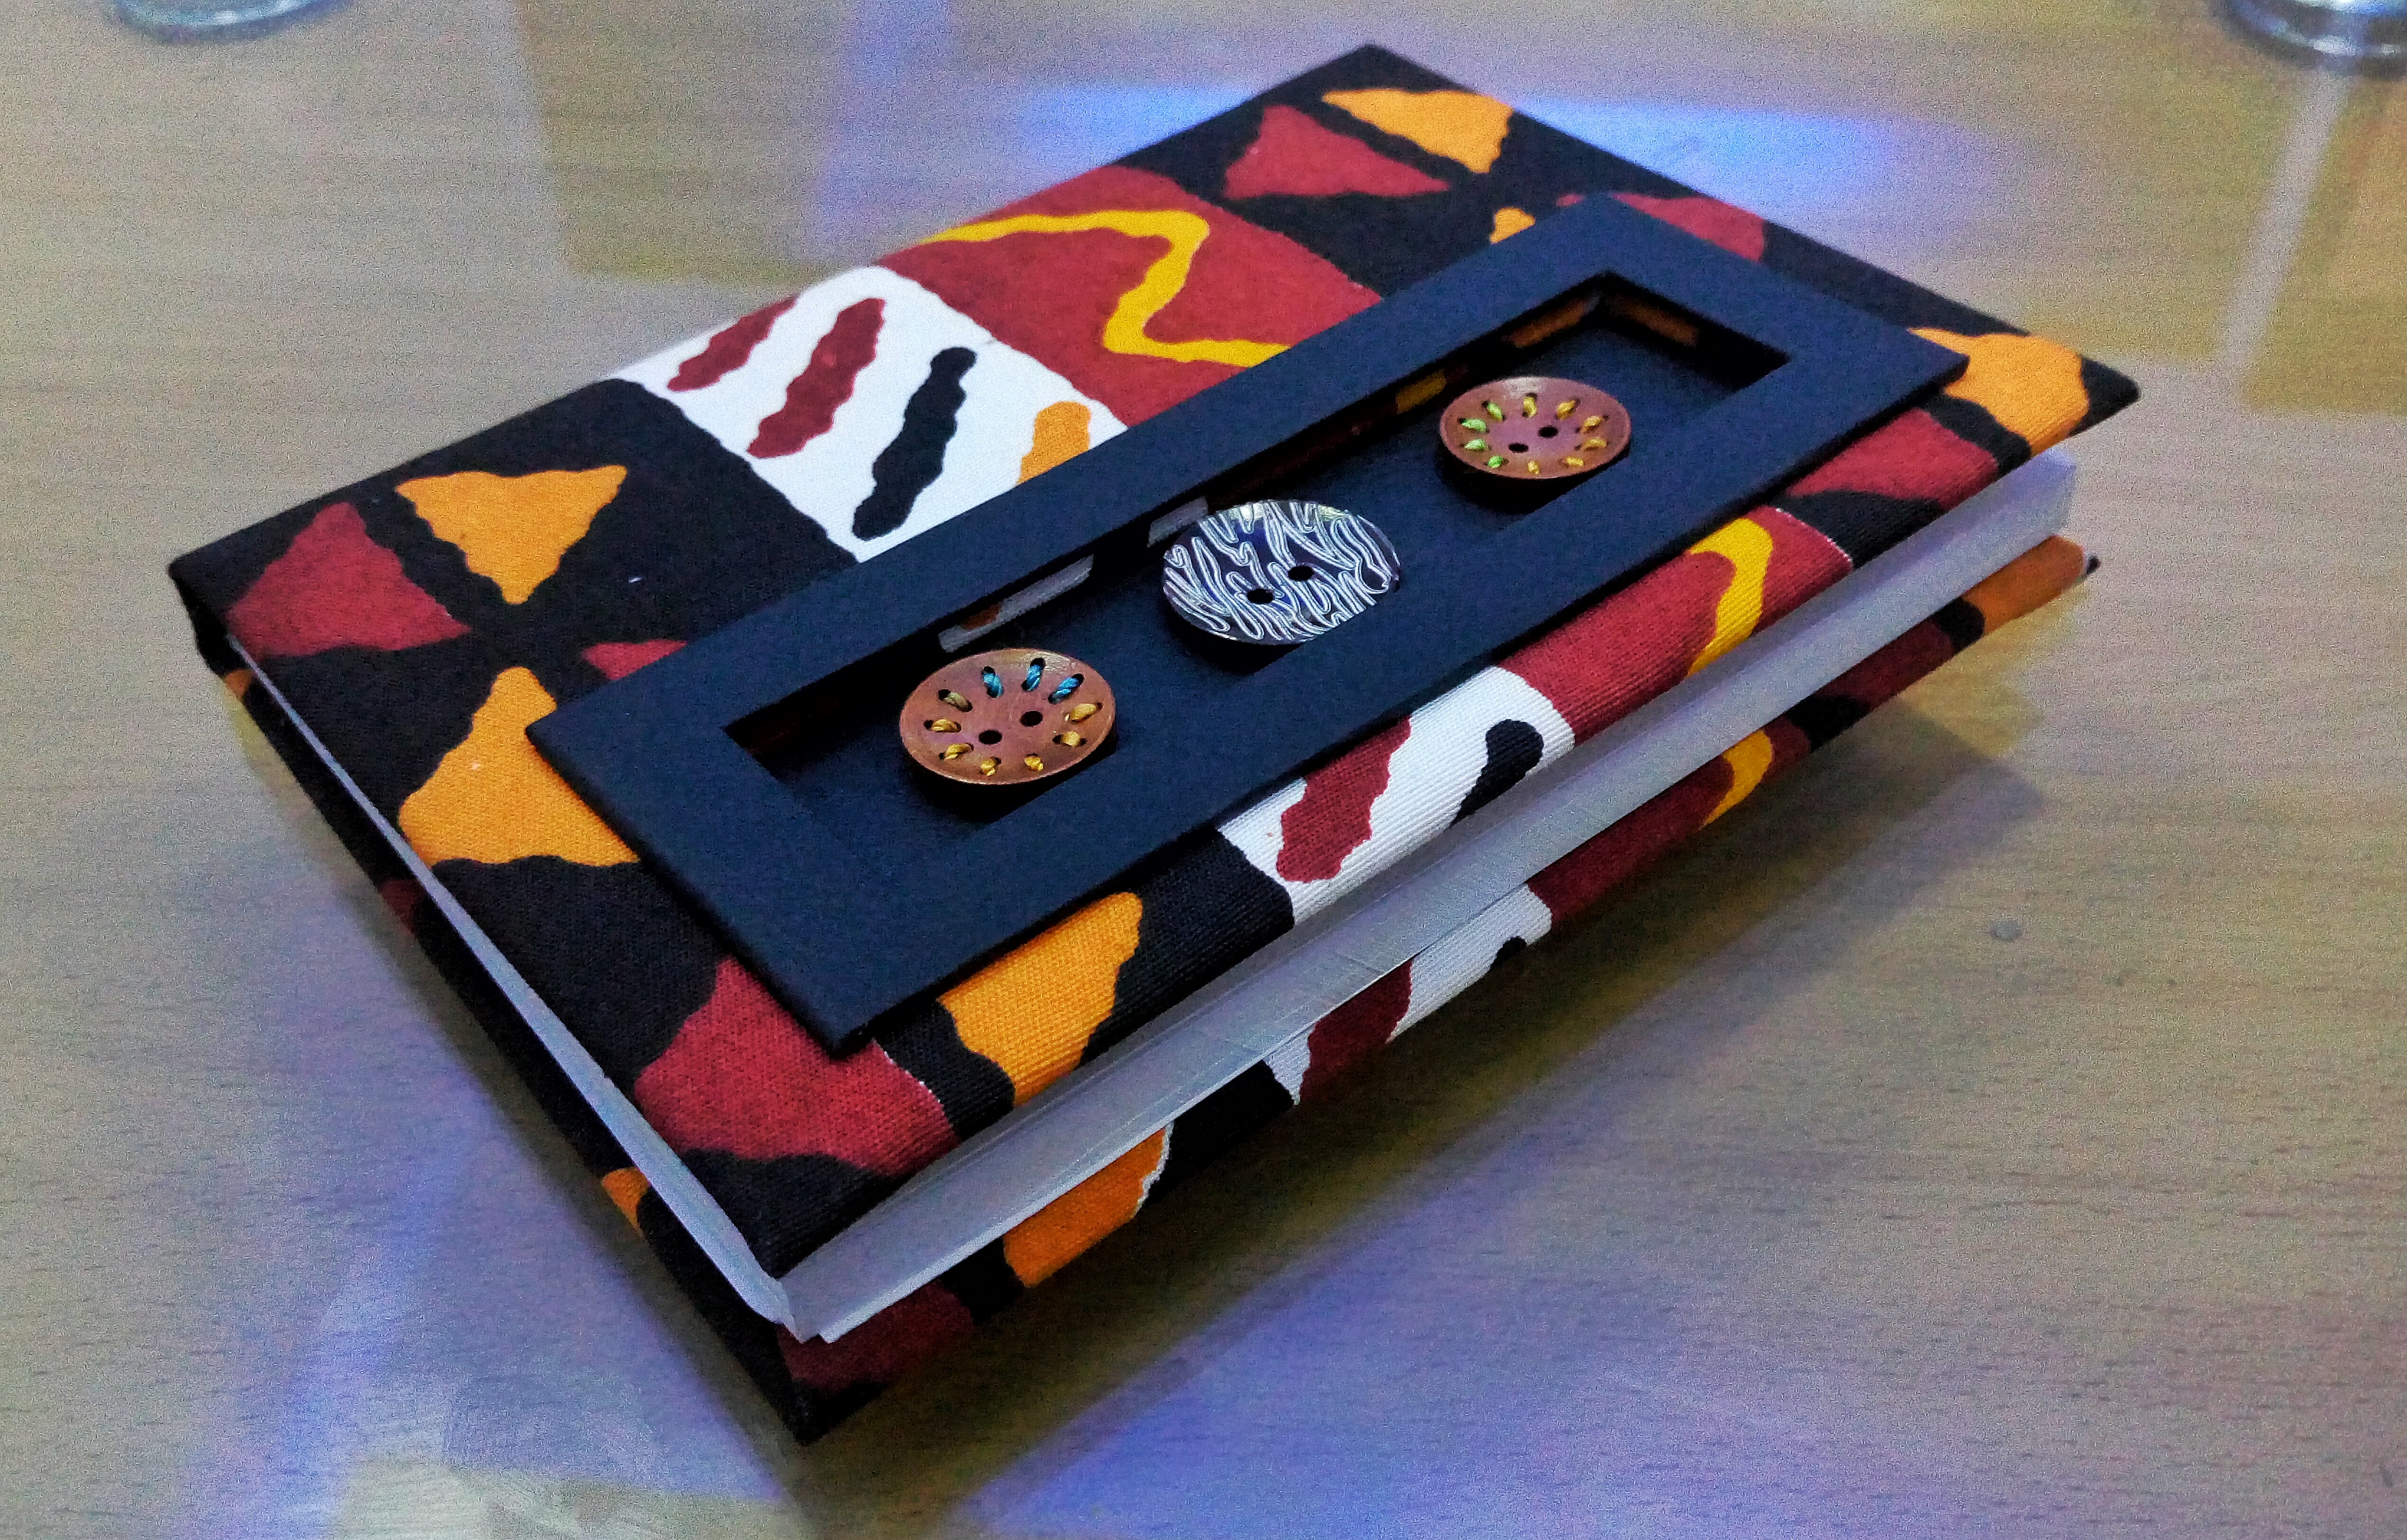 Handmade journal A5 size 21516020mm weight 02KGS material fabric which varies depending on clients needs